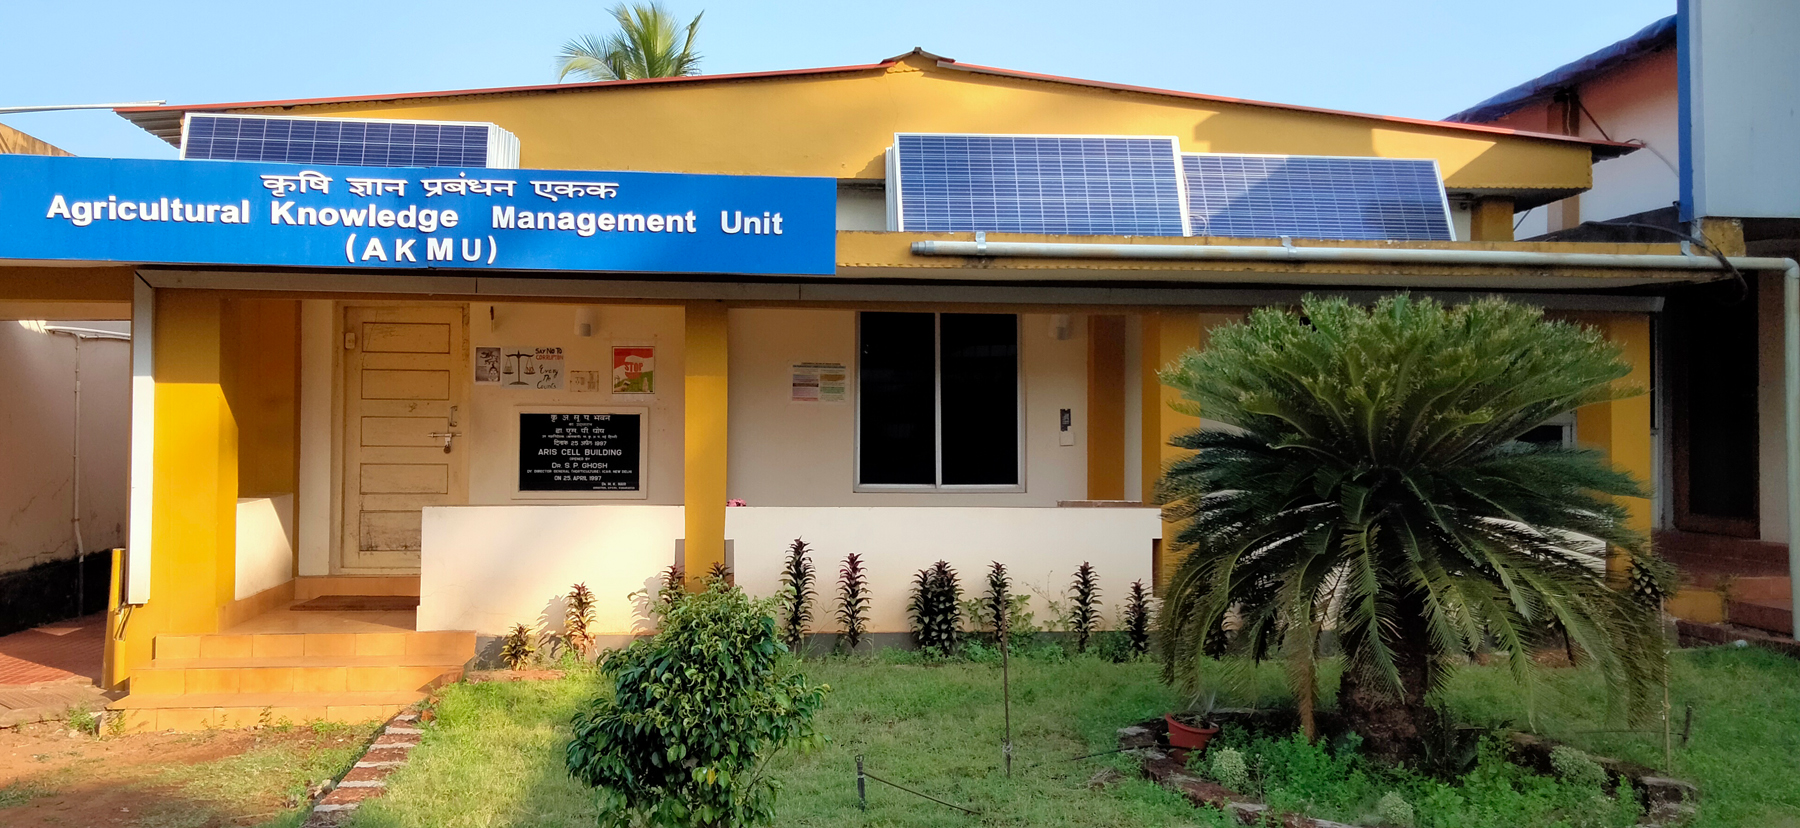 Image of Agricultural Knowledge Management Unit